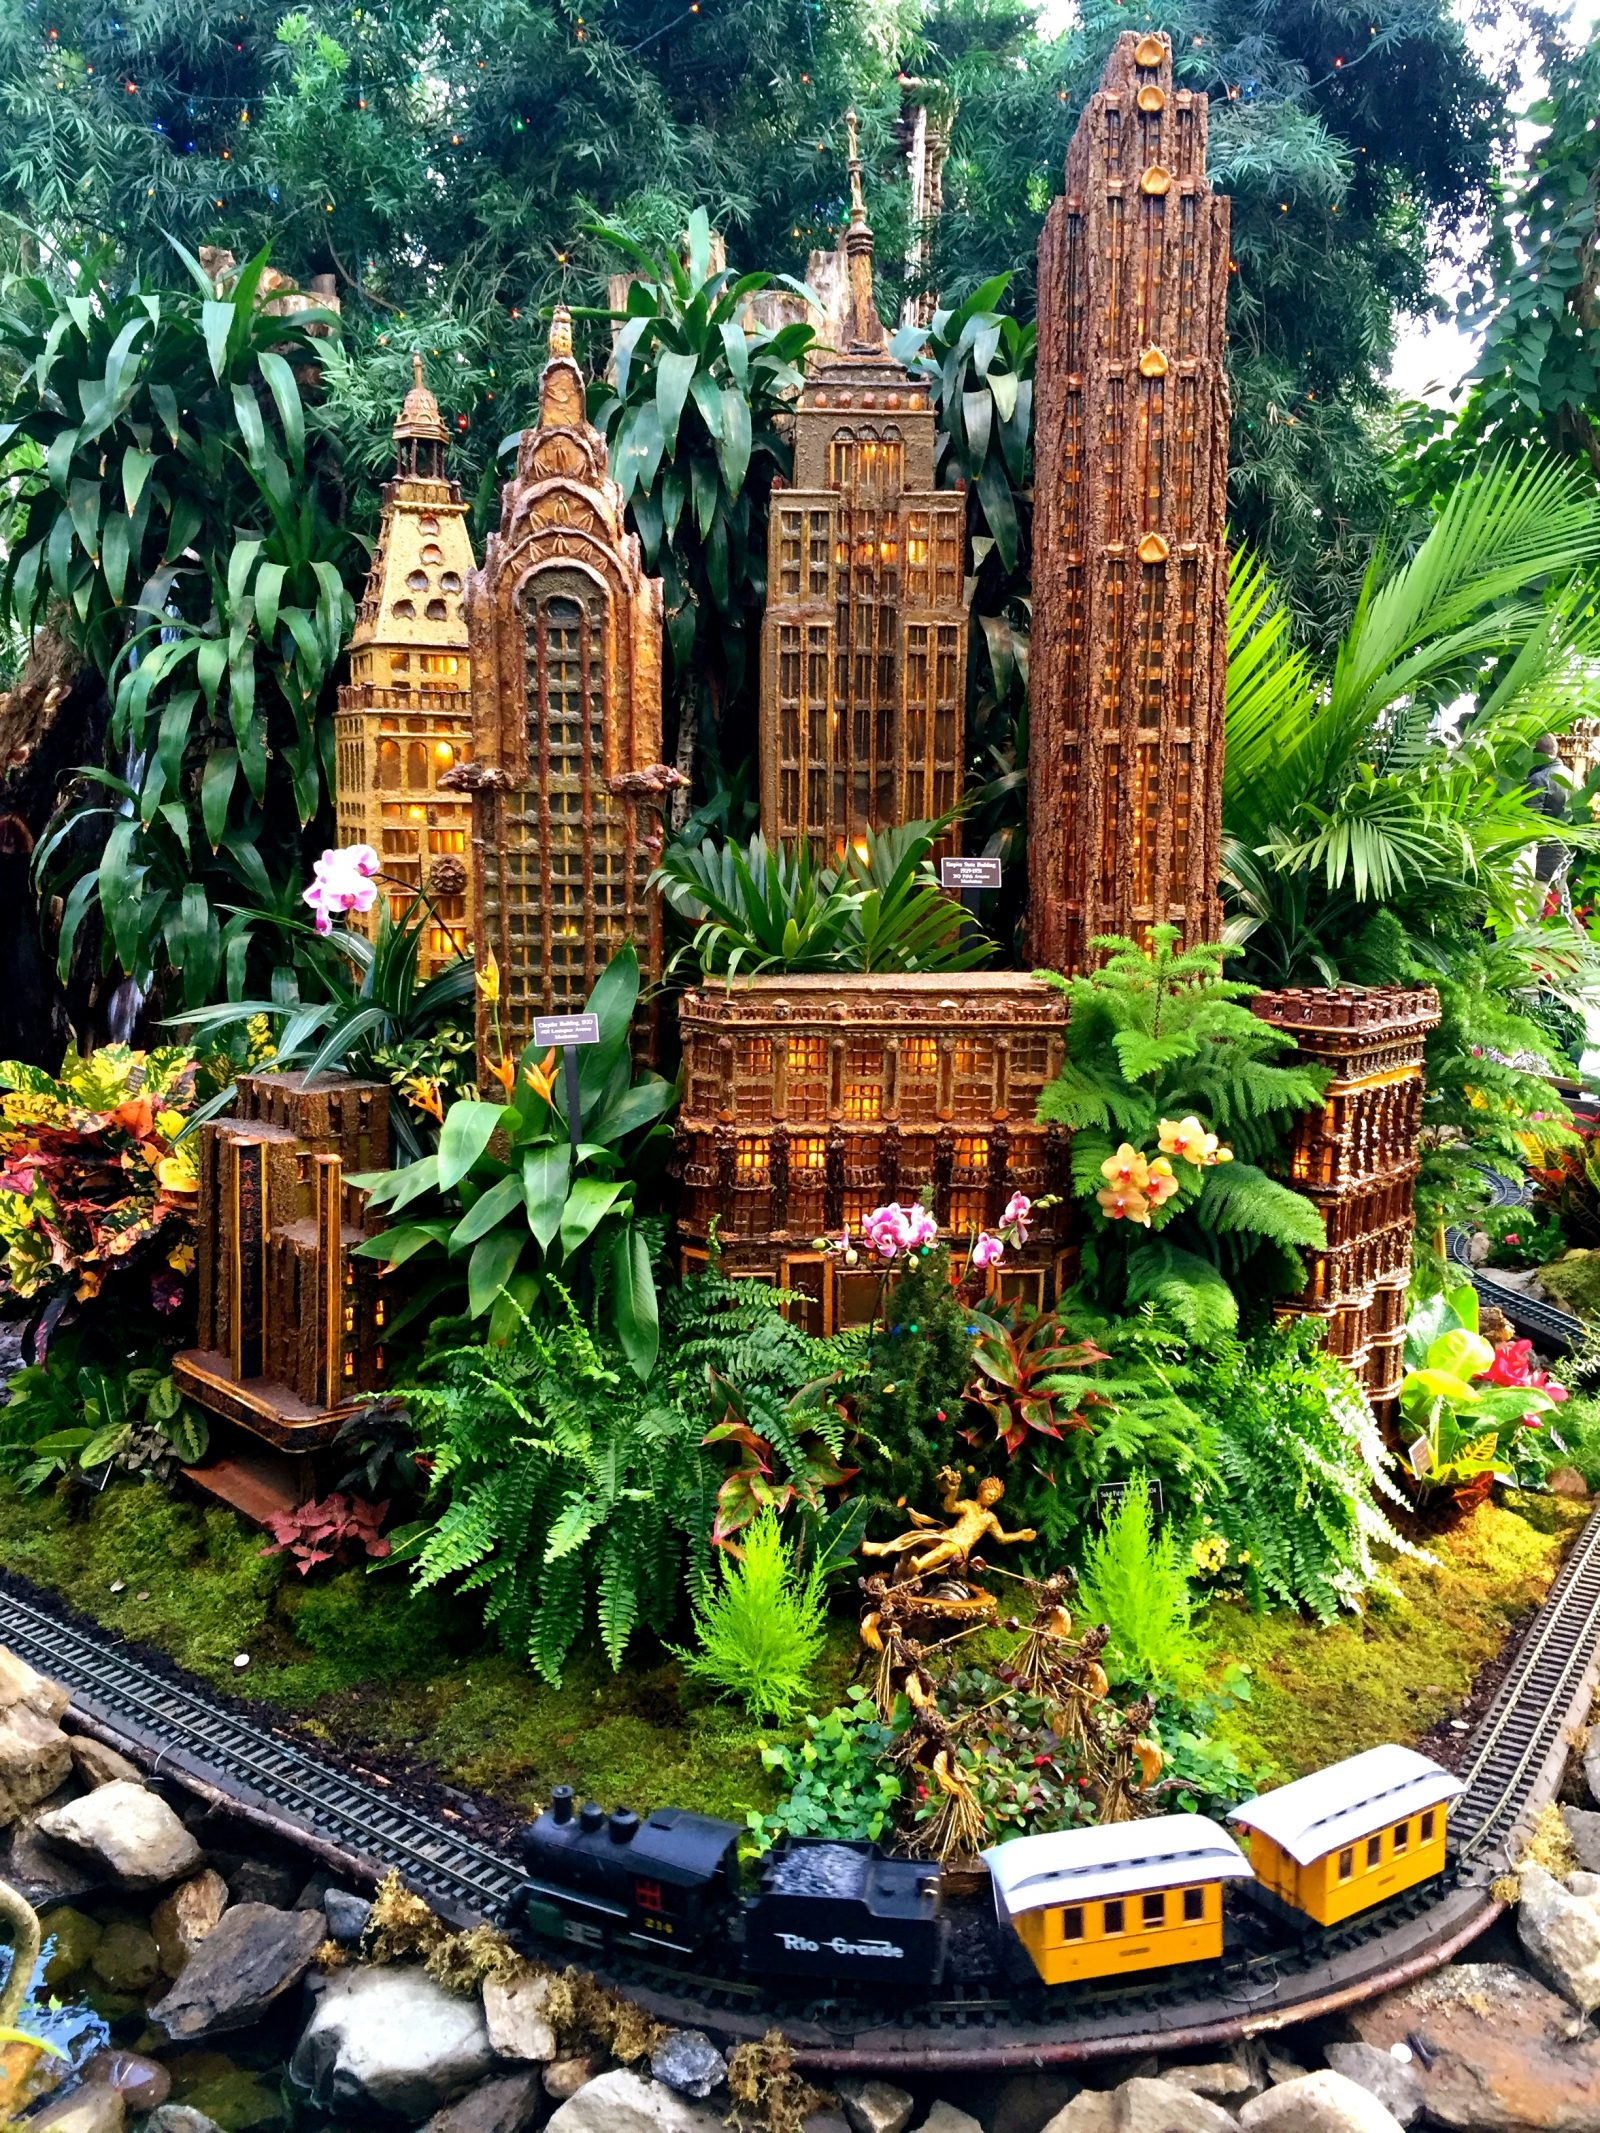 New york botanical garden 39 s holiday train show Botanical garden train show